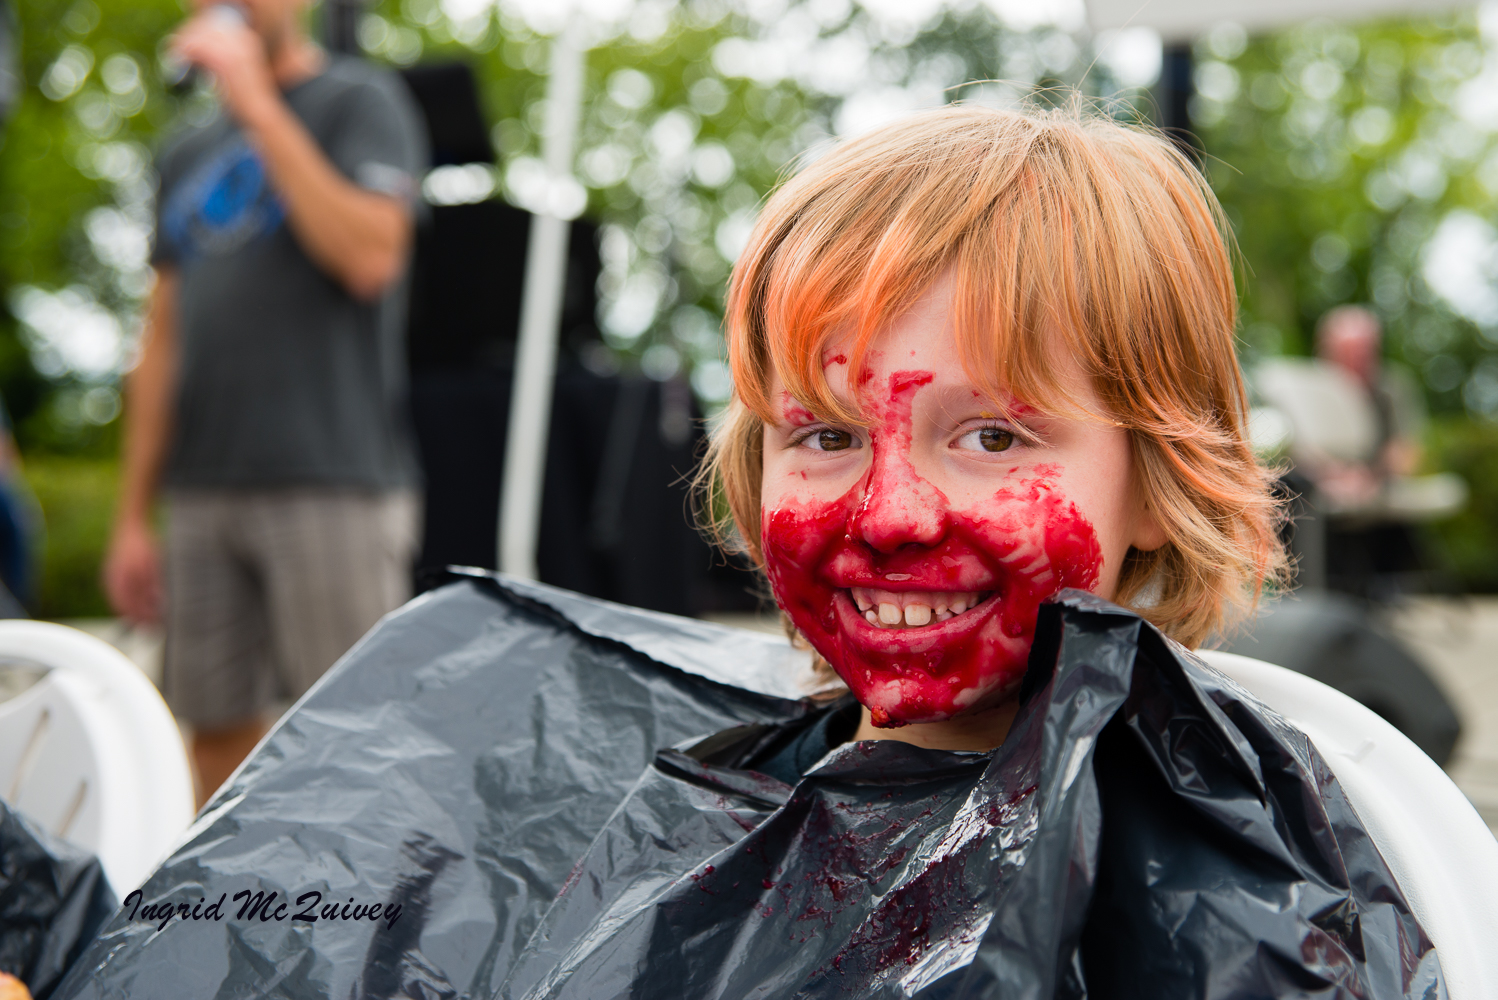 A BOY HAD JUST FINISHED A PIE EATING CONTEST AT THE RED, WHITE, AND BLUE FESTIVAL. THE FESTIVAL IS HELD THE FIRST SATURDAY EACH JULY.